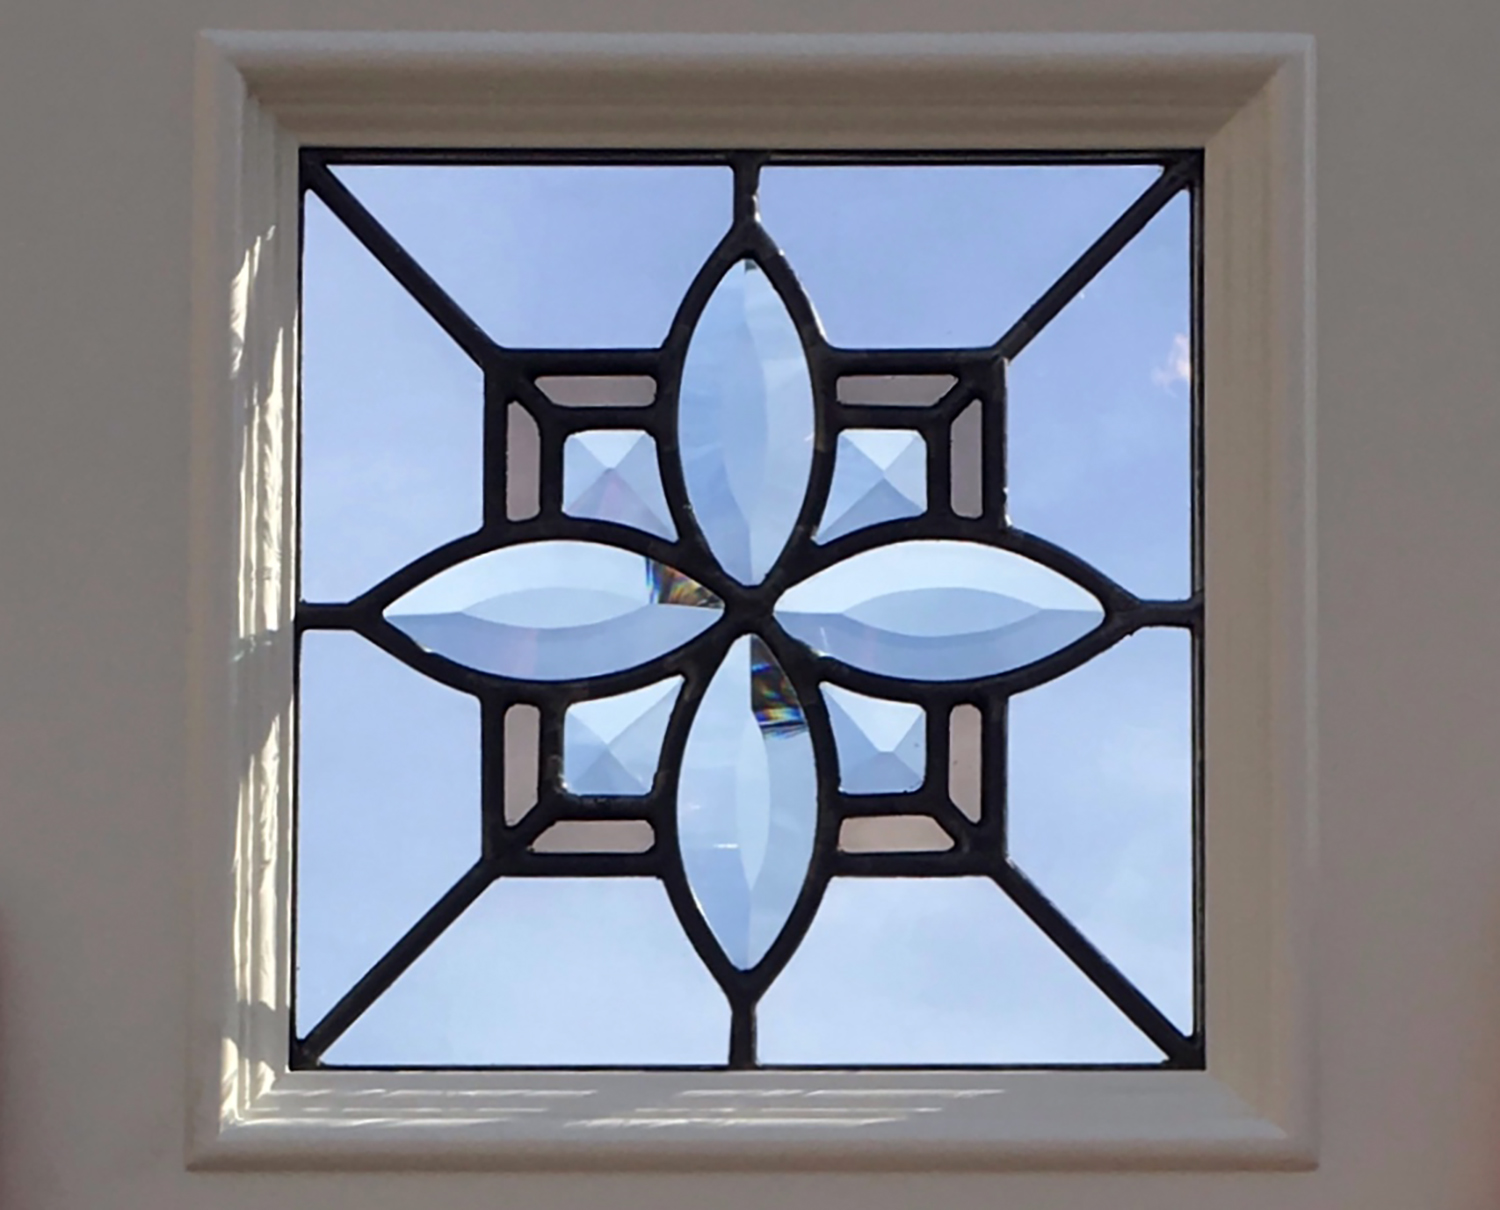 bevel cluster flower cabinet door beveled leaded glass stained glass window palo alto atherton california san francisco2.jpg